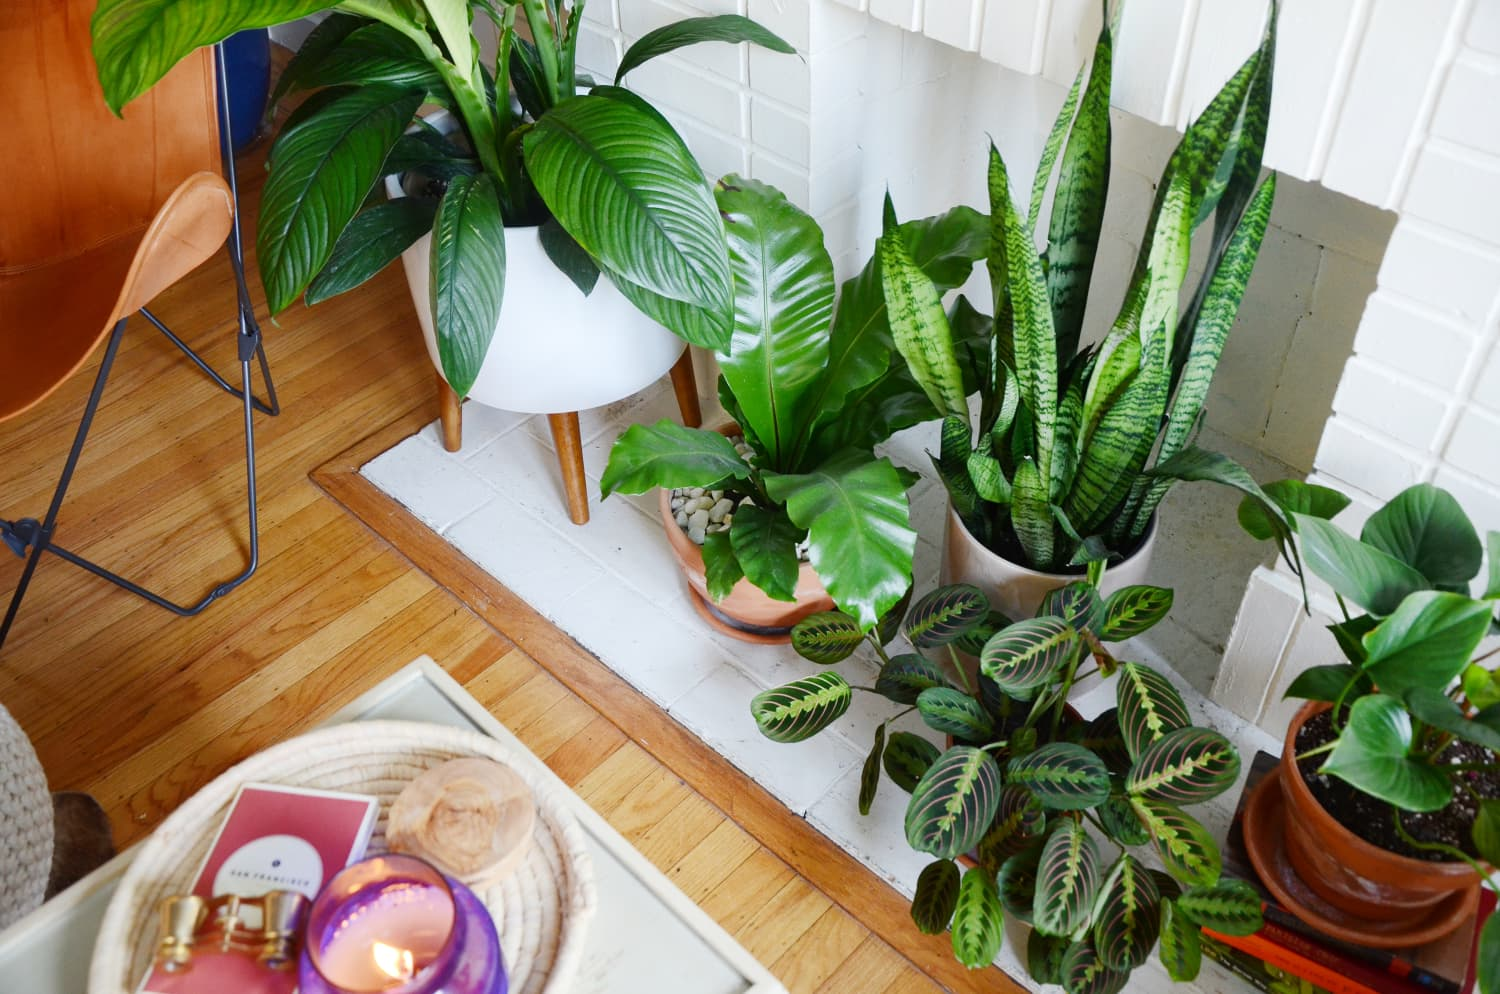 5 Houseplants You Can't Kill by Overwatering